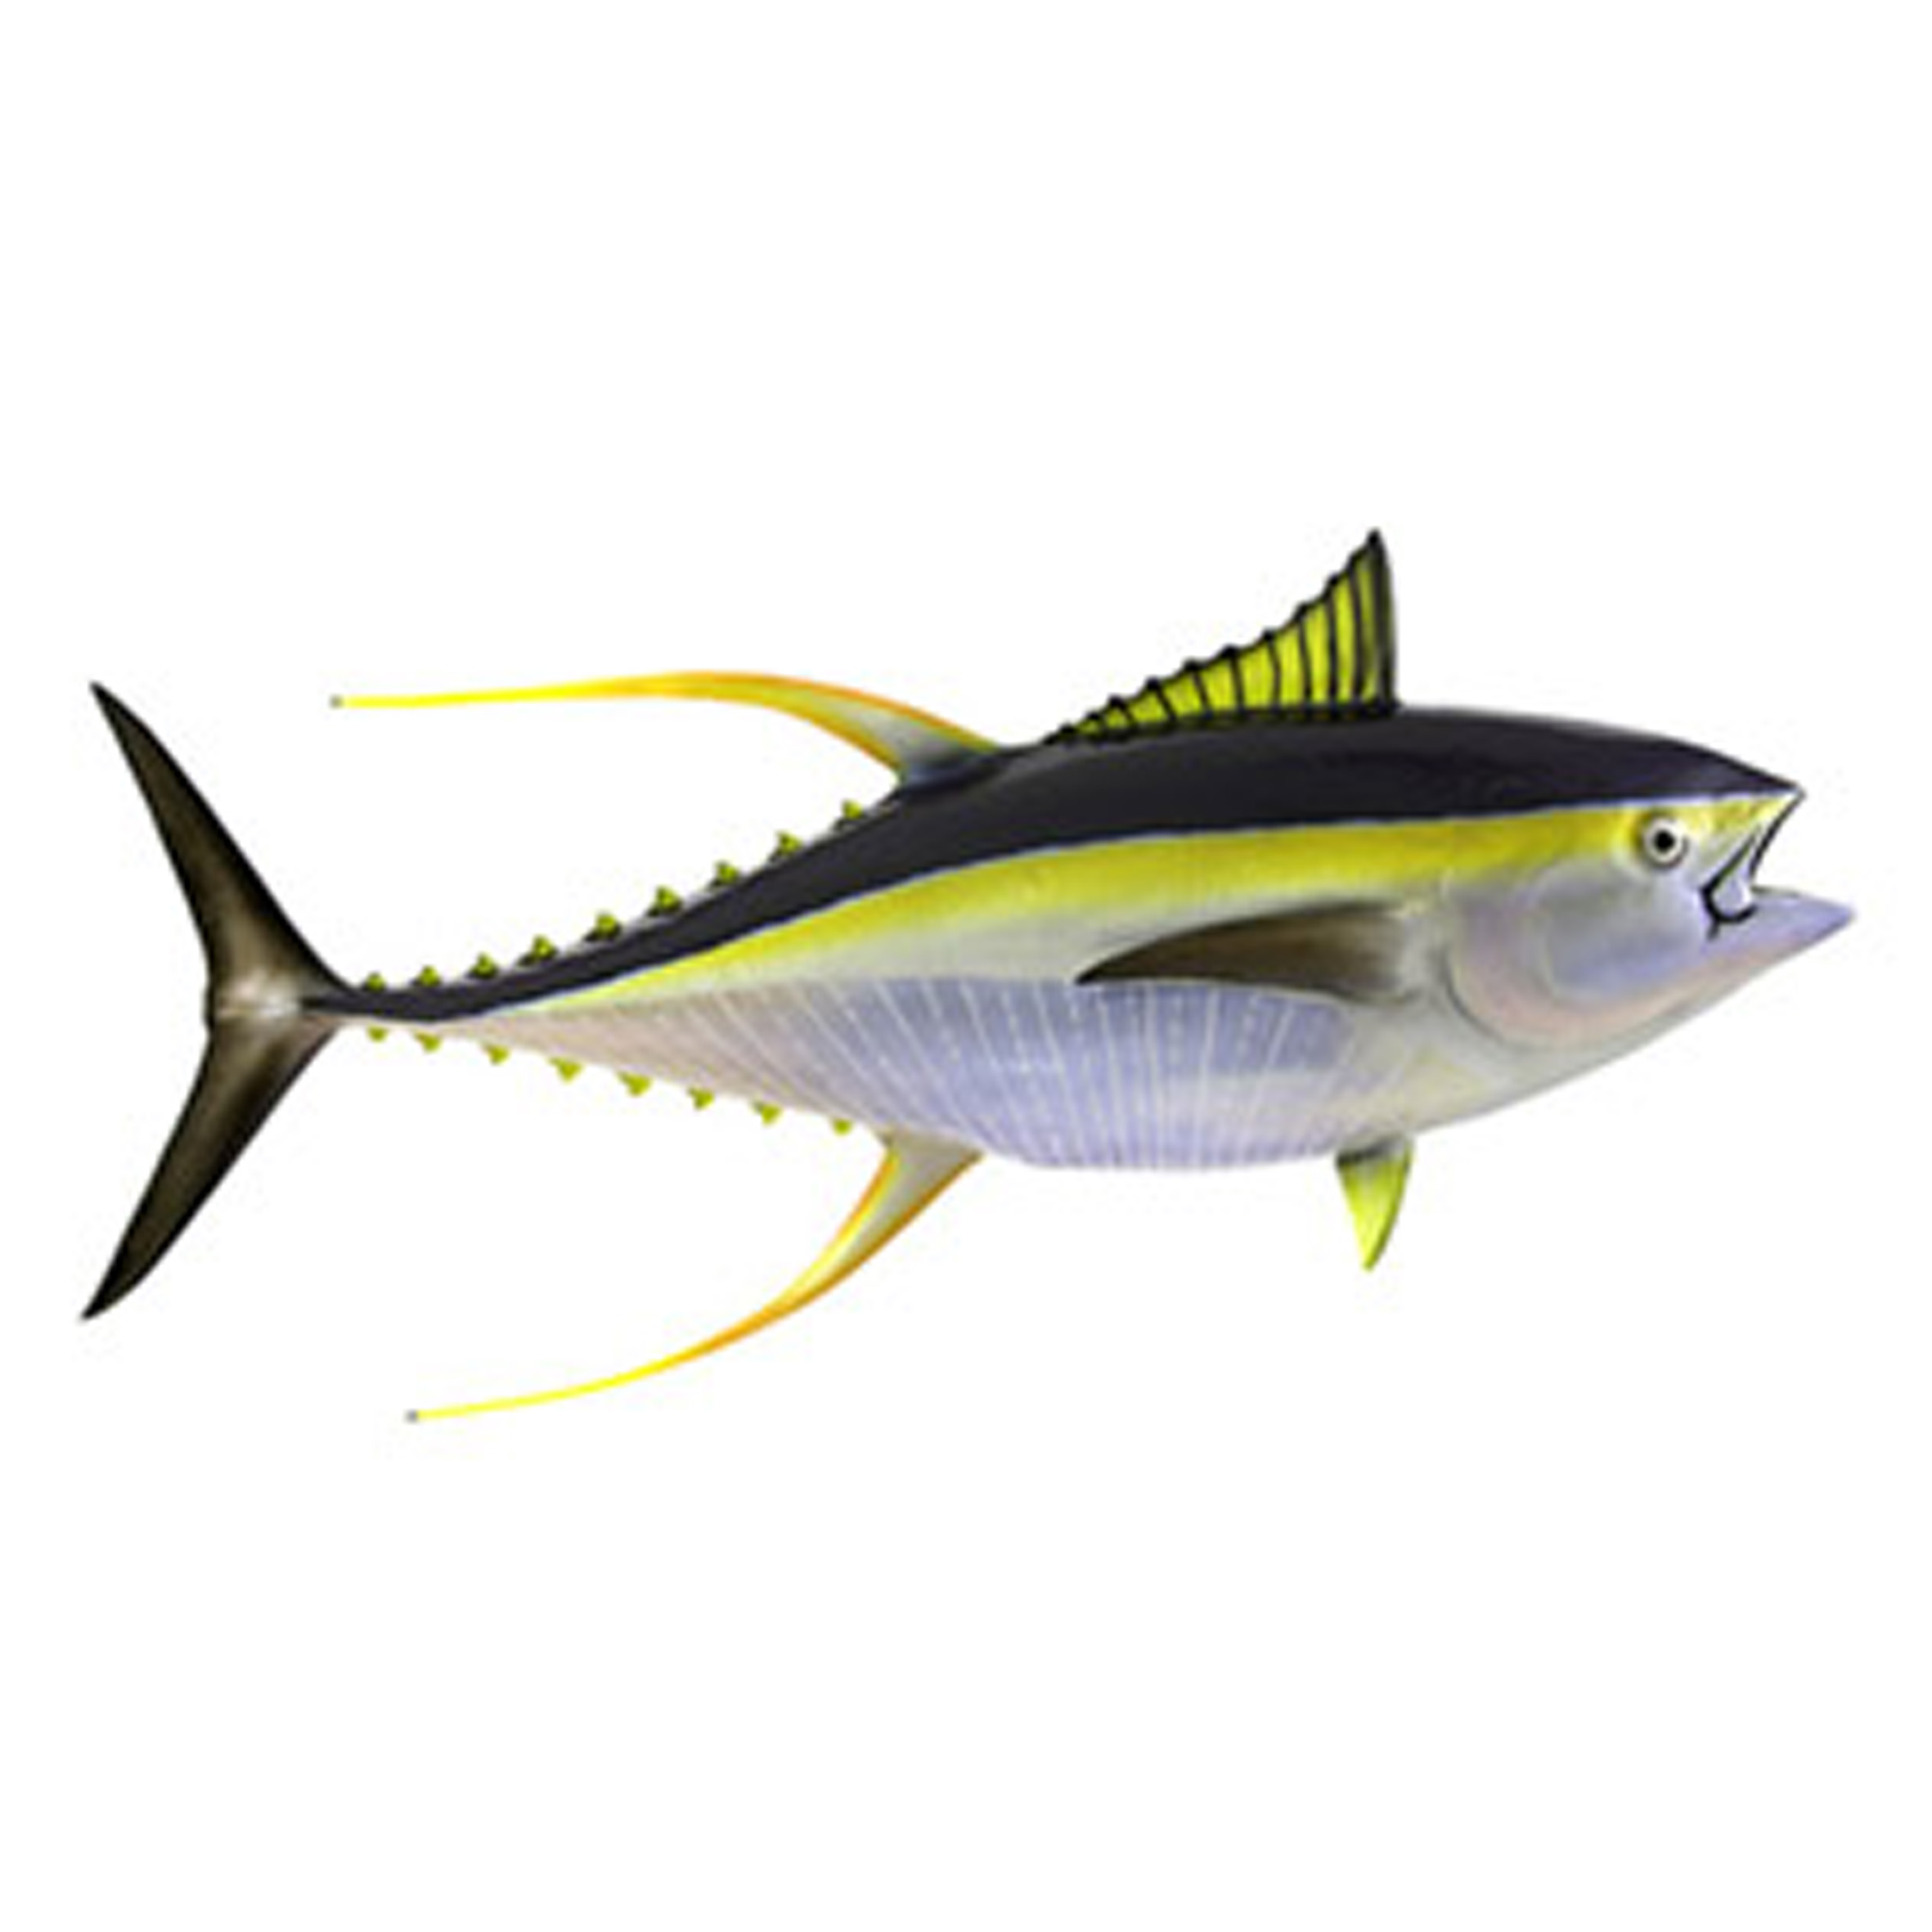 Yellowfin Tuna  (A'ai)  Average size is 13kg but can get up to and over 80kg. Yellowfin are very hard fighting fish that foam large schools and are found more often during the summer. A delicious fish and very good for sashimi.